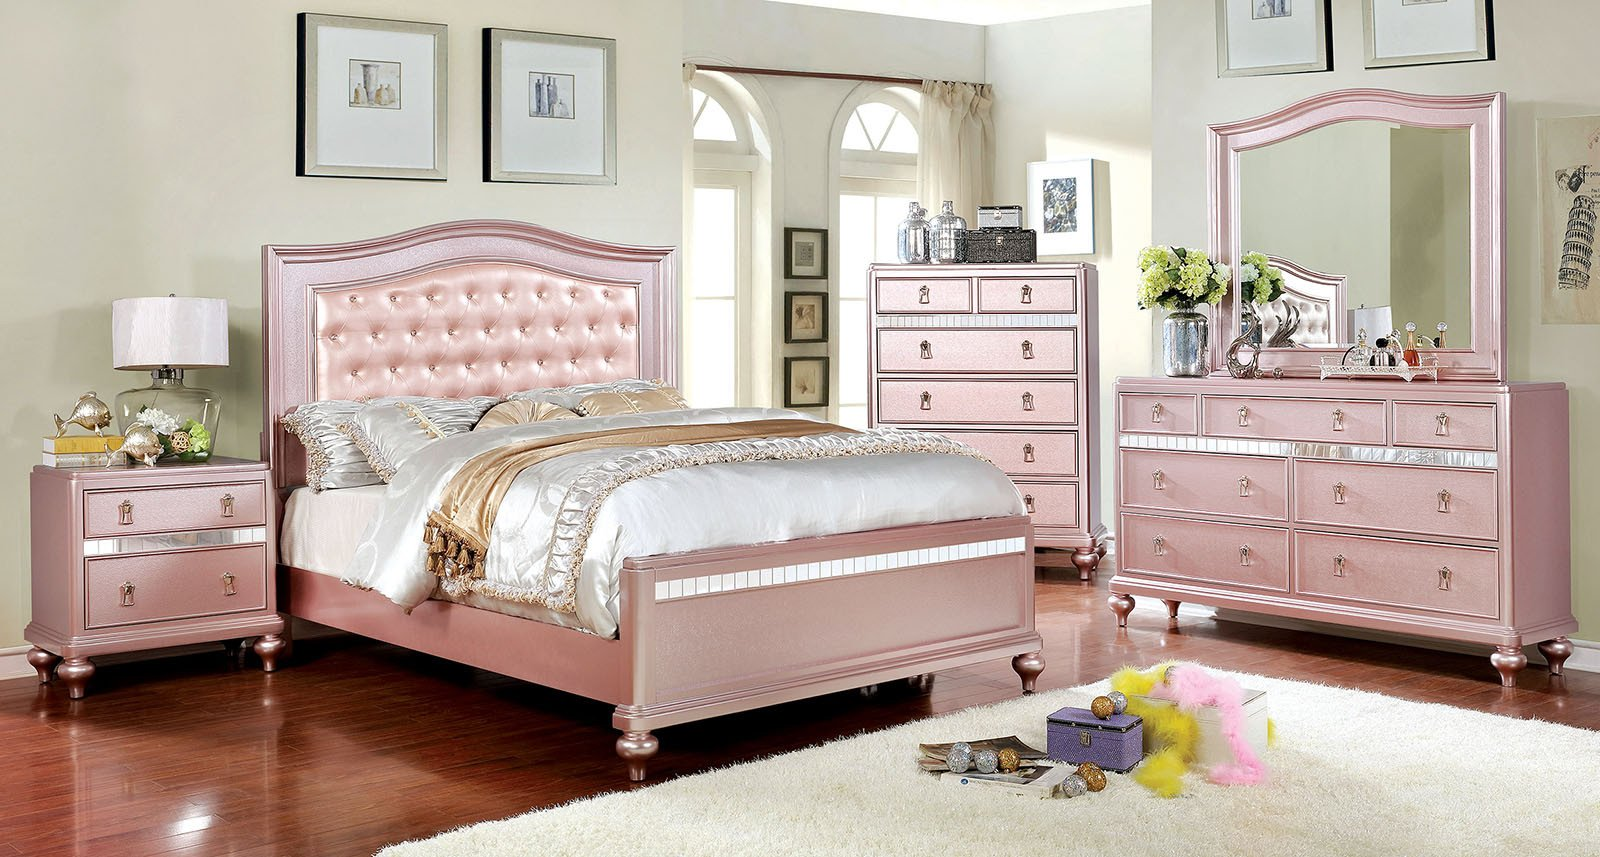 King Size Bedroom Set for Sale Beautiful Ariston Rose Gold Finish Cal King Size Bed with Mirrored Trim Jeweled button Tufted Padded Leather Headboard